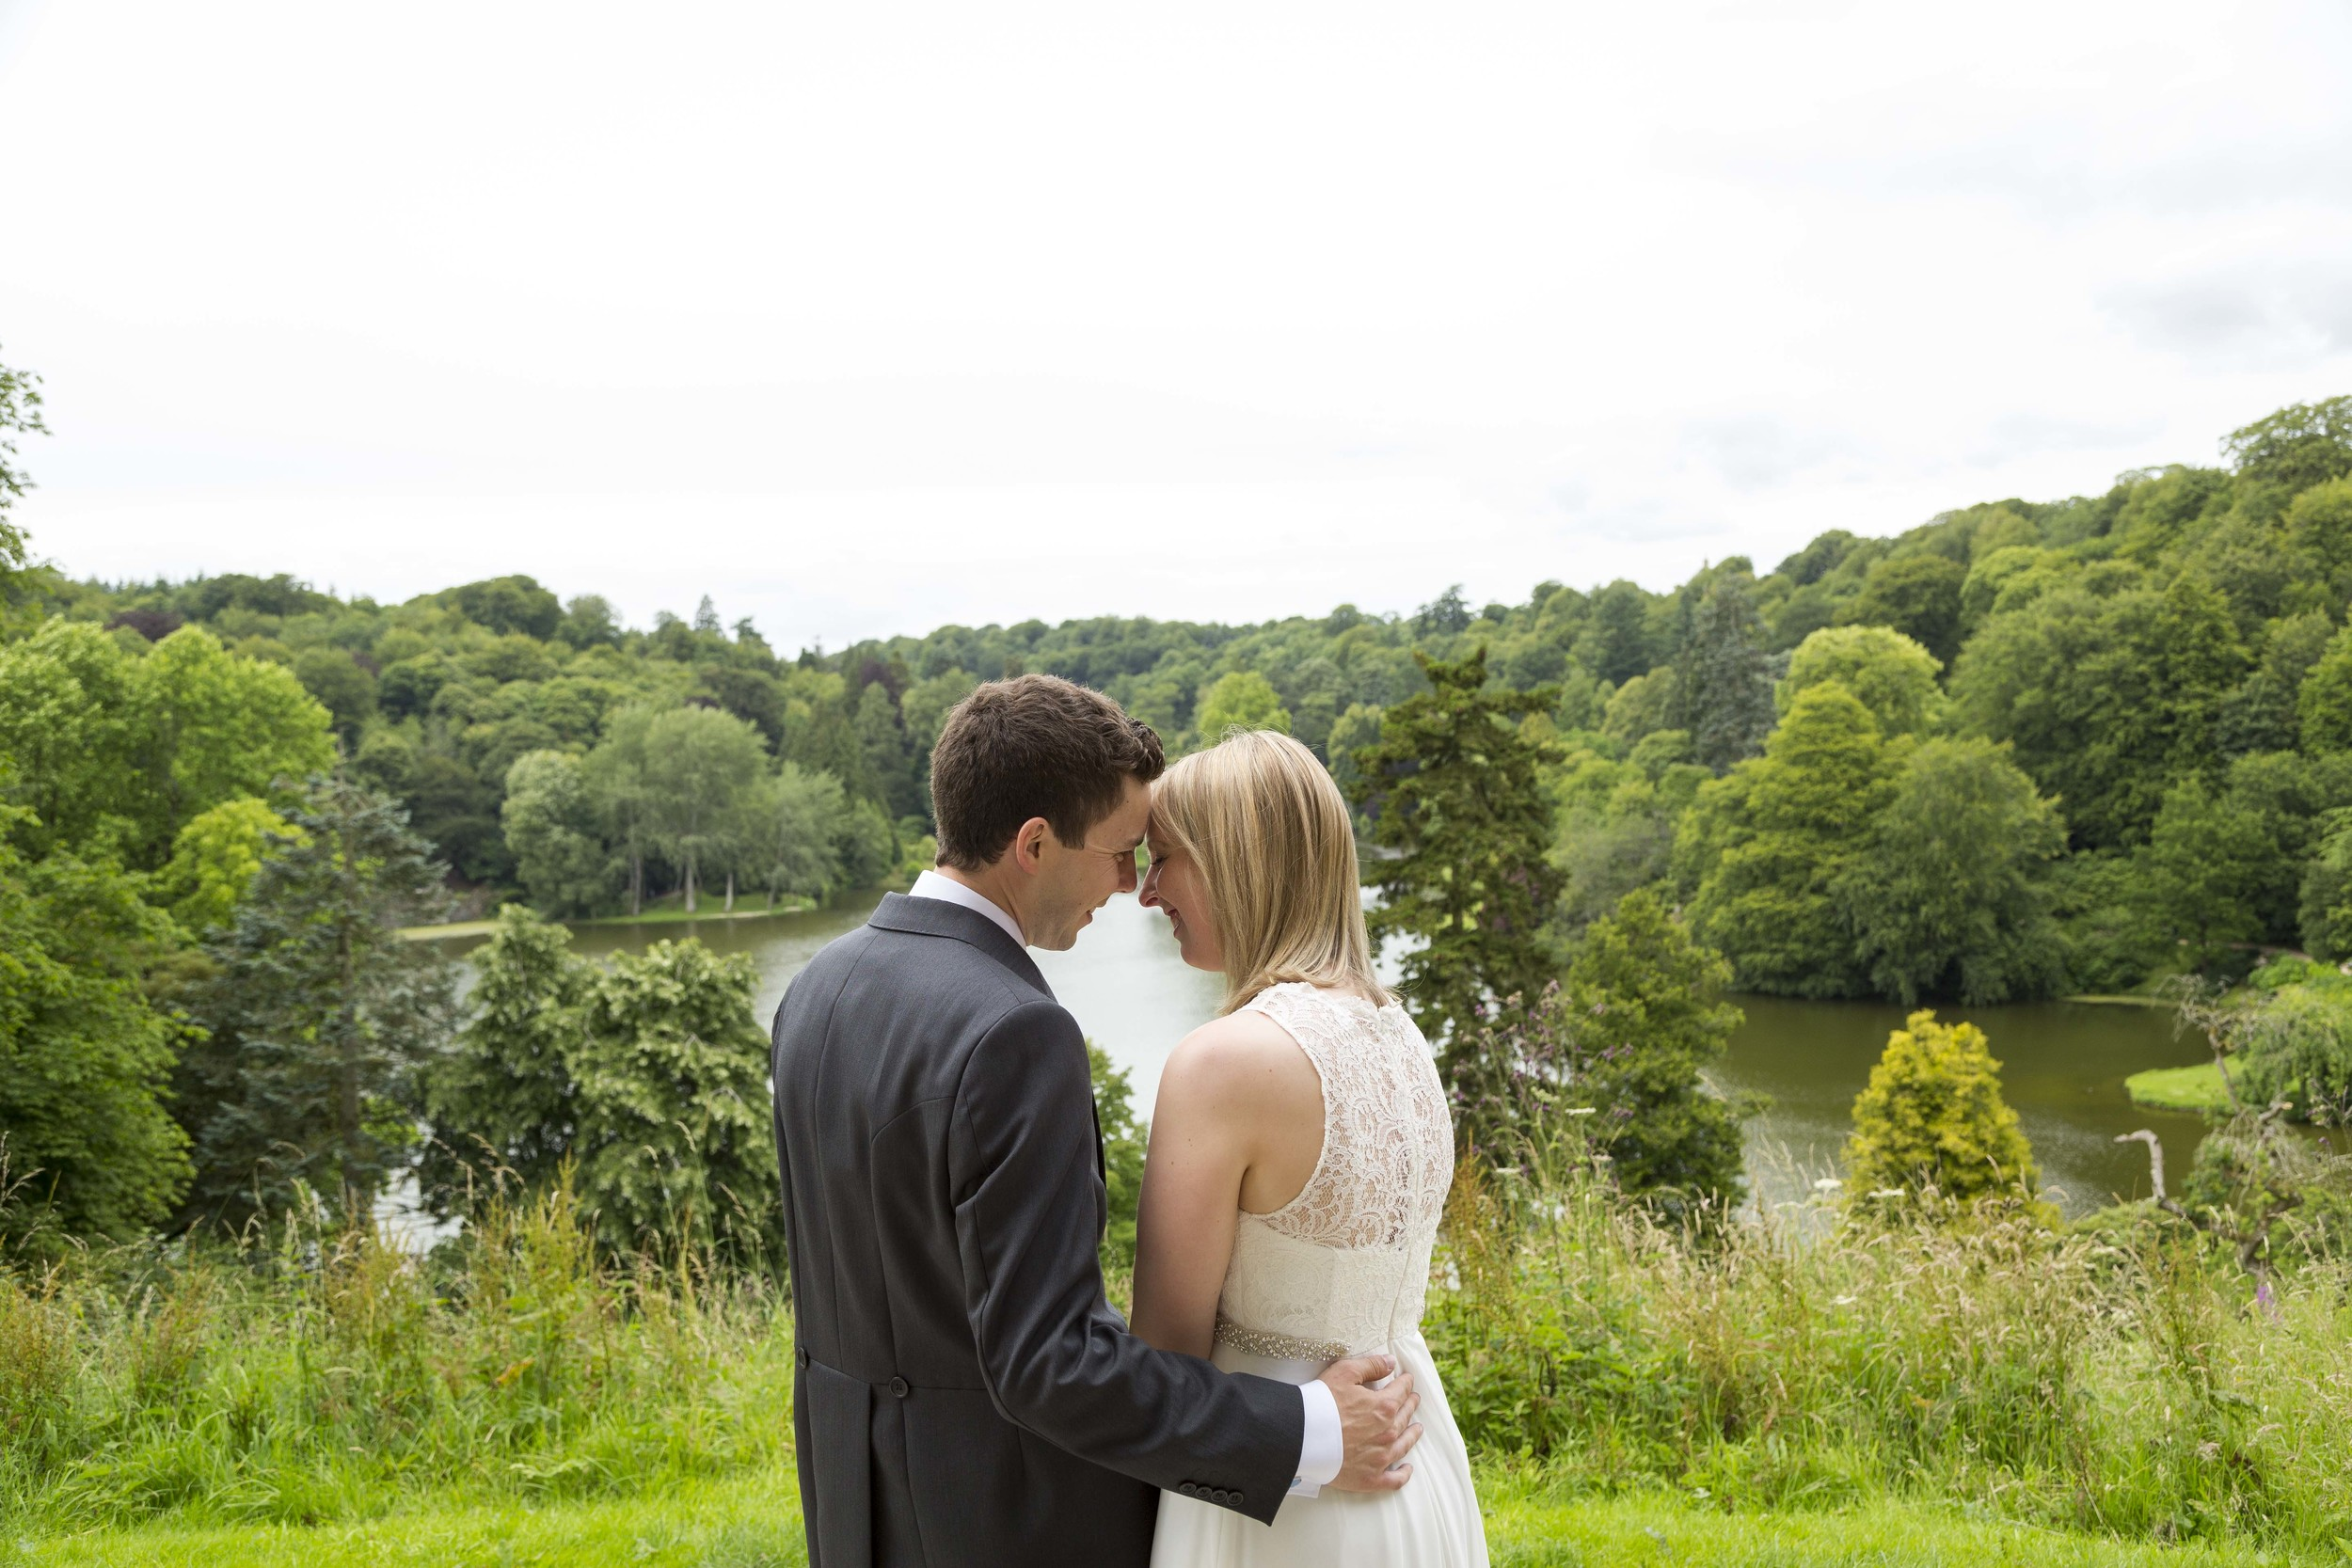 This was my only July wedding this year and it couldn't have been set in a more picturesque setting! Stourhead Gardens was the location and the lovely Barry & Elaine were the couple. They got married in a pantheon and then had these type of views to choose from as their backdrops to choose from when walking around the grounds. It was a tough one on the amount of ground we had to cover but was 100% worth it for the results!